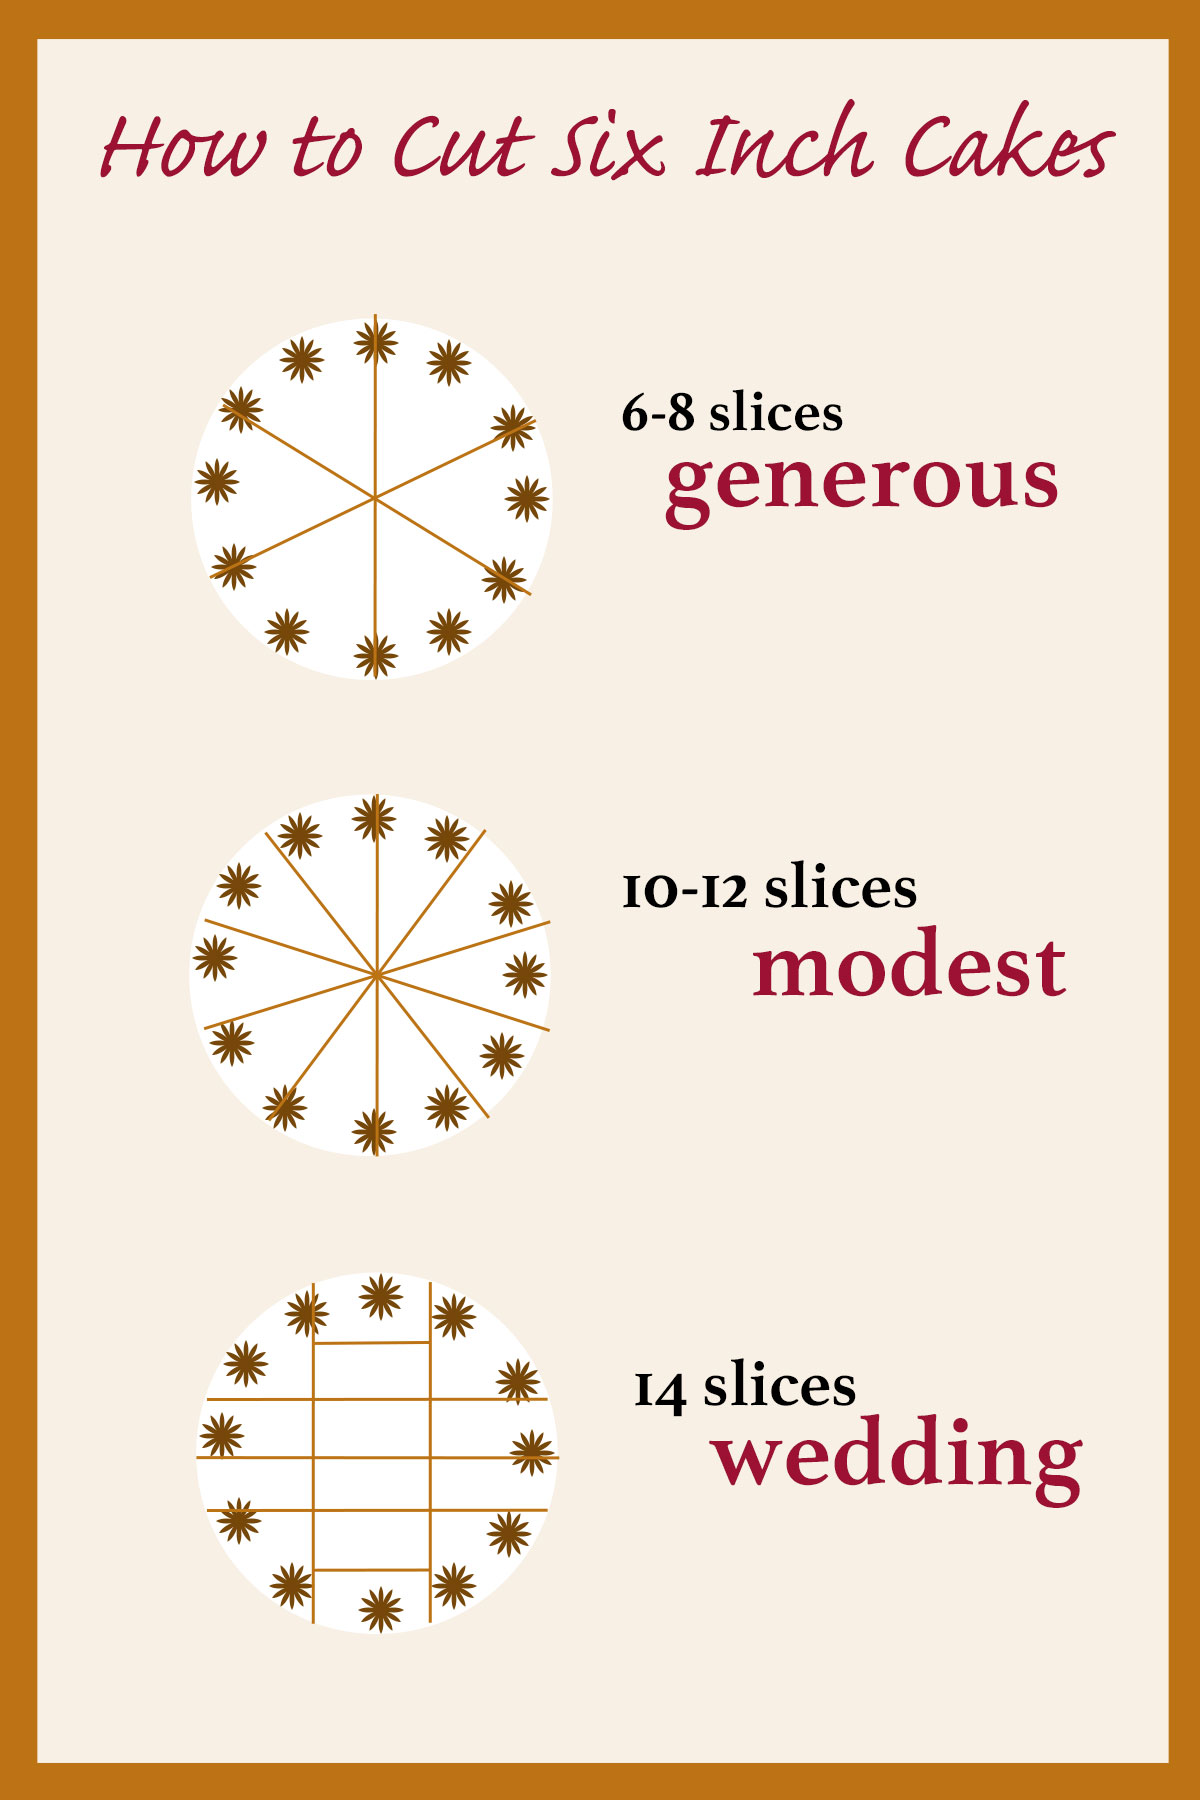 Infographic showing 3 ways to cut a six inch cake with  different number of servings.